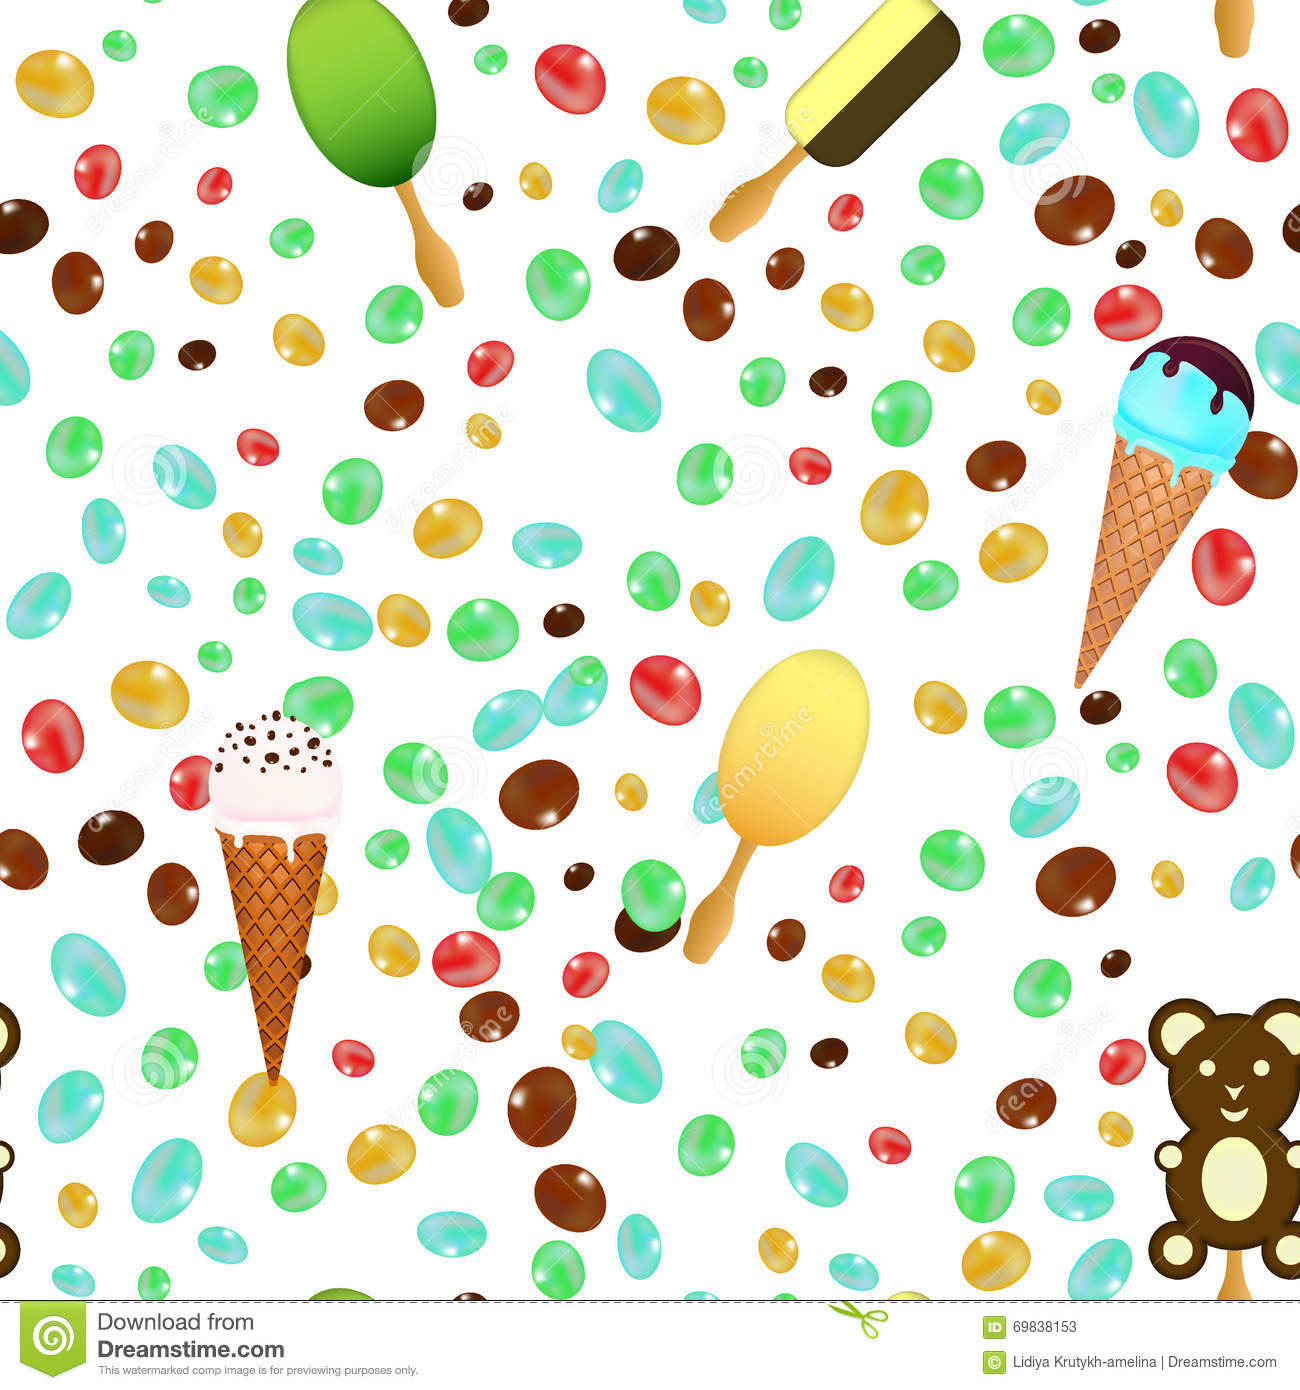 Ice Cream Cones Seamless Pattern Background Stock Vector: Ice Cream Cones Seamless Pattern Background With Candies